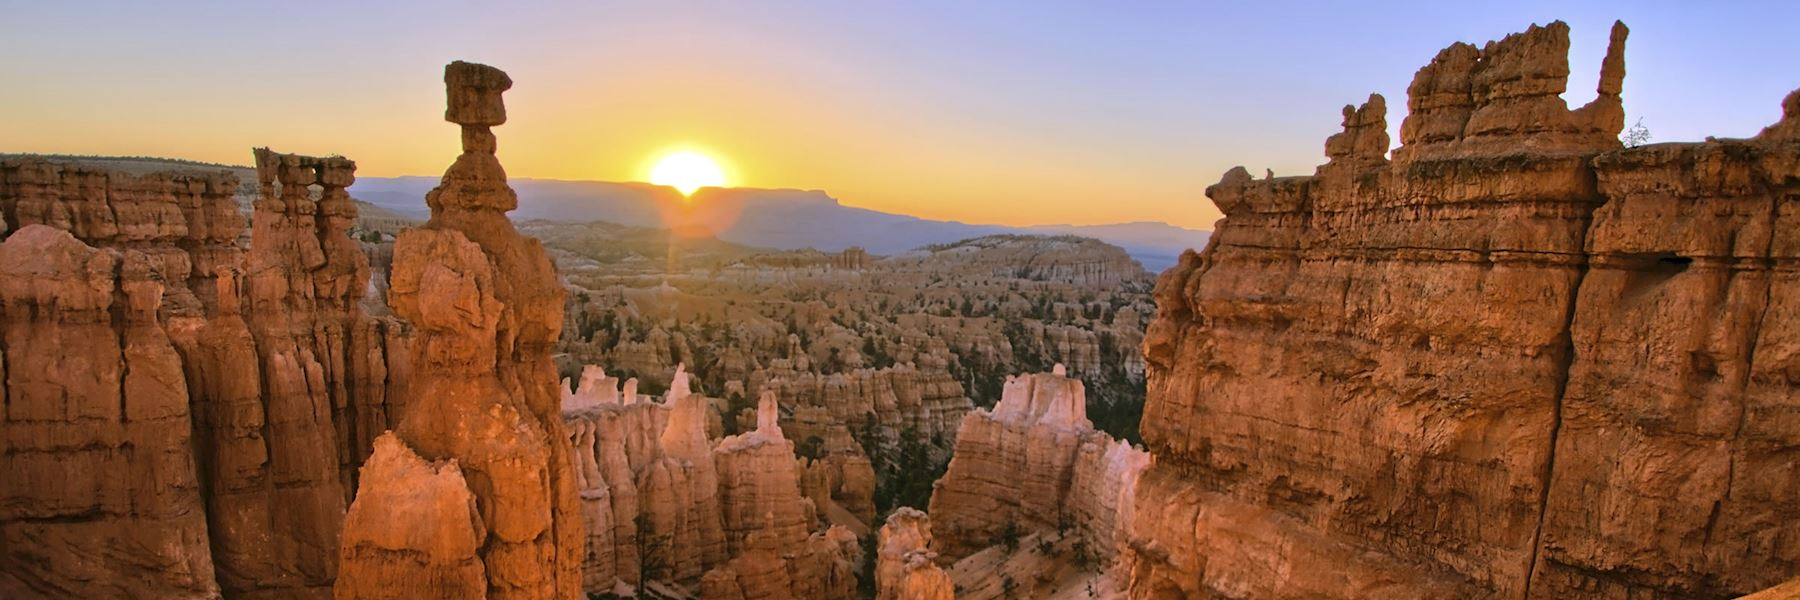 Visit Bryce Canyon National Park The Usa Audley Travel